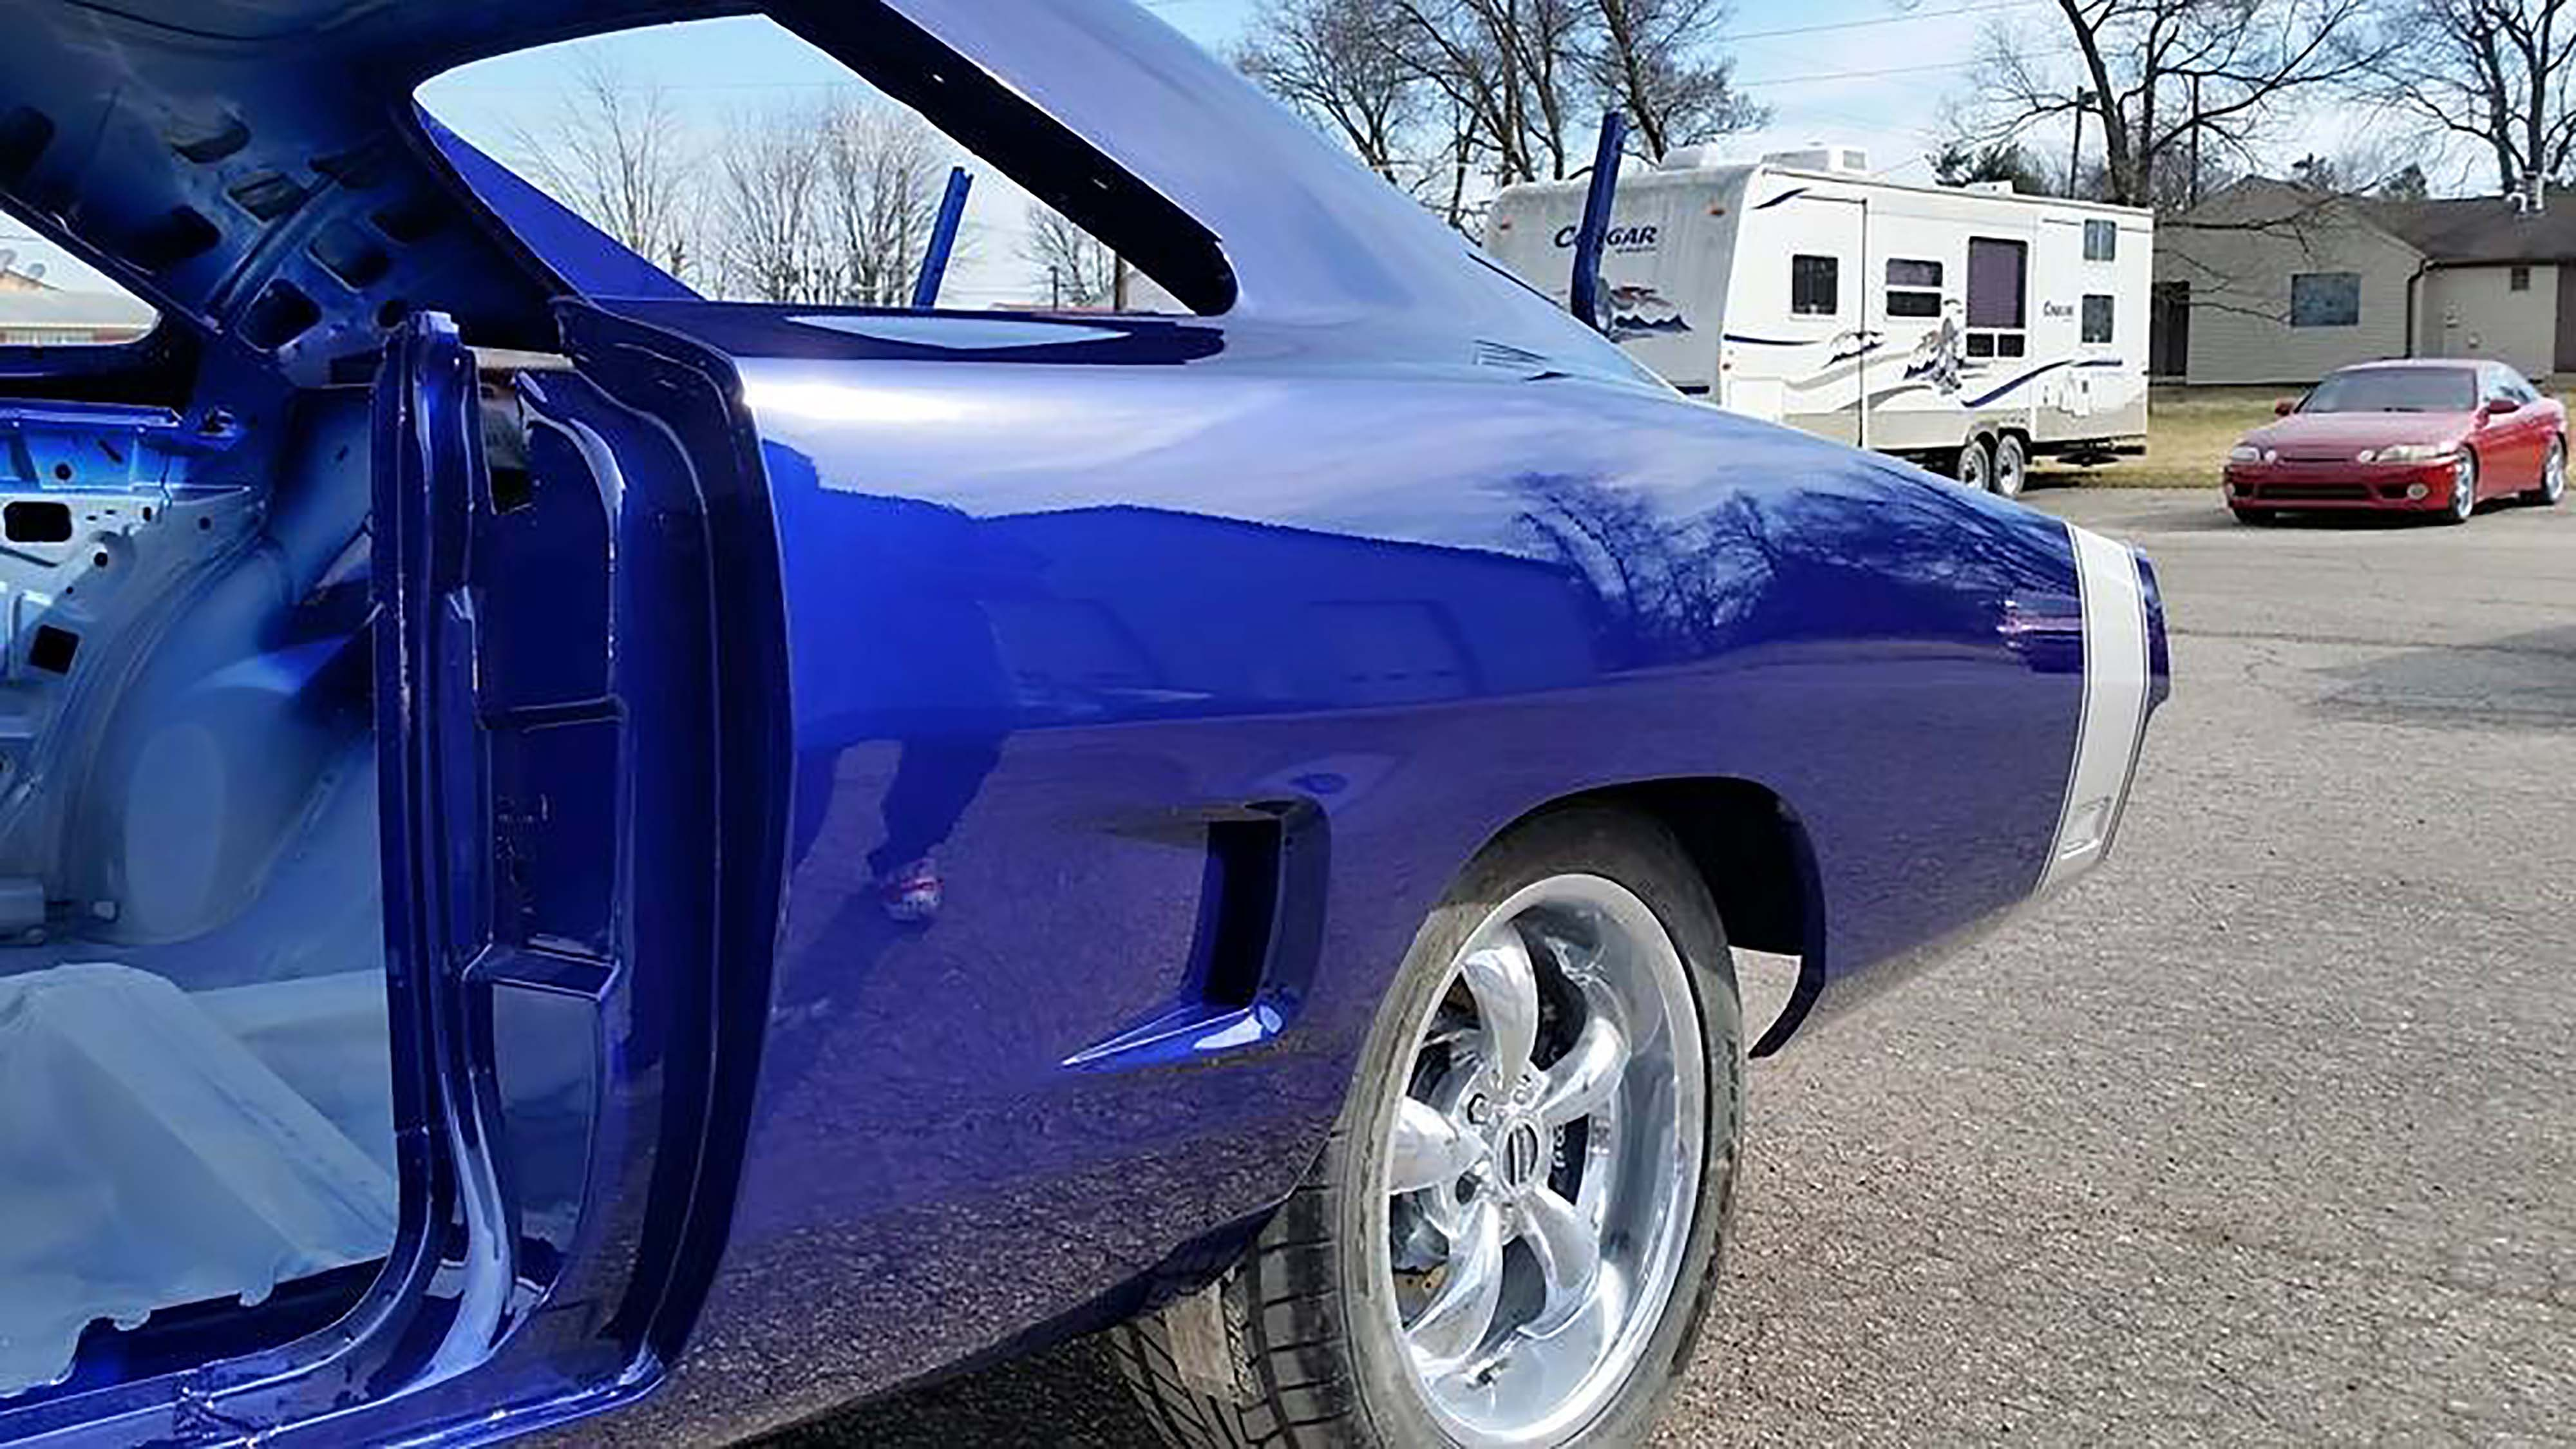 """We threw this little gem in here to visually explain why we bailed on having a logo or symbol in the butt stripe. Remember that we grafted scoops from a 1970 GTX onto the rear quarters of our Charger to create functional cooling ducts for the rear brakes. We felt that was enough """"accent"""" for the rear of the car."""